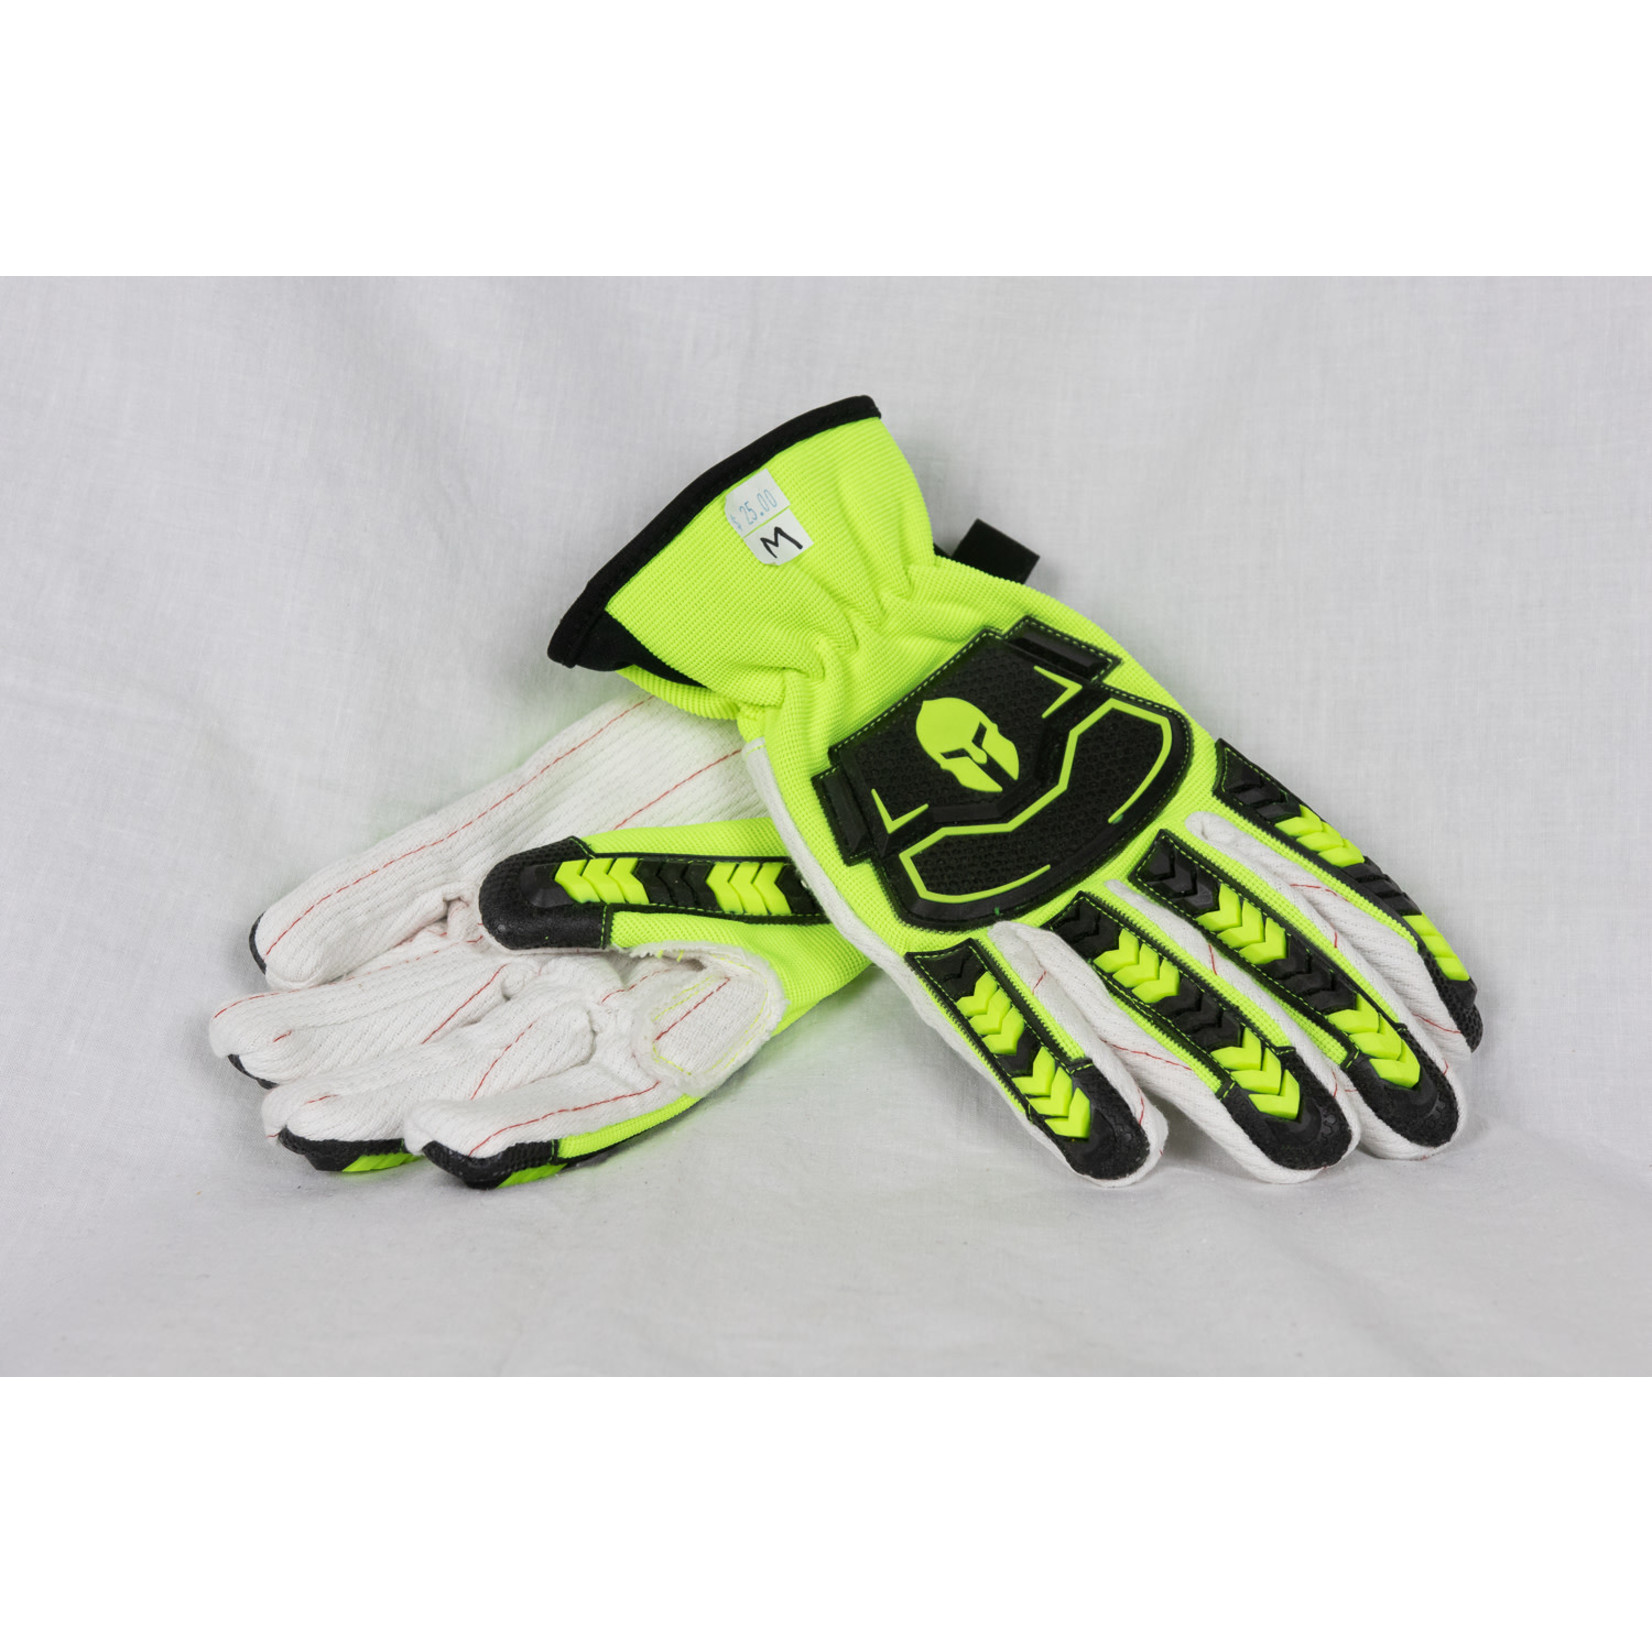 Spartan Ultimate Protection Impact Gloves